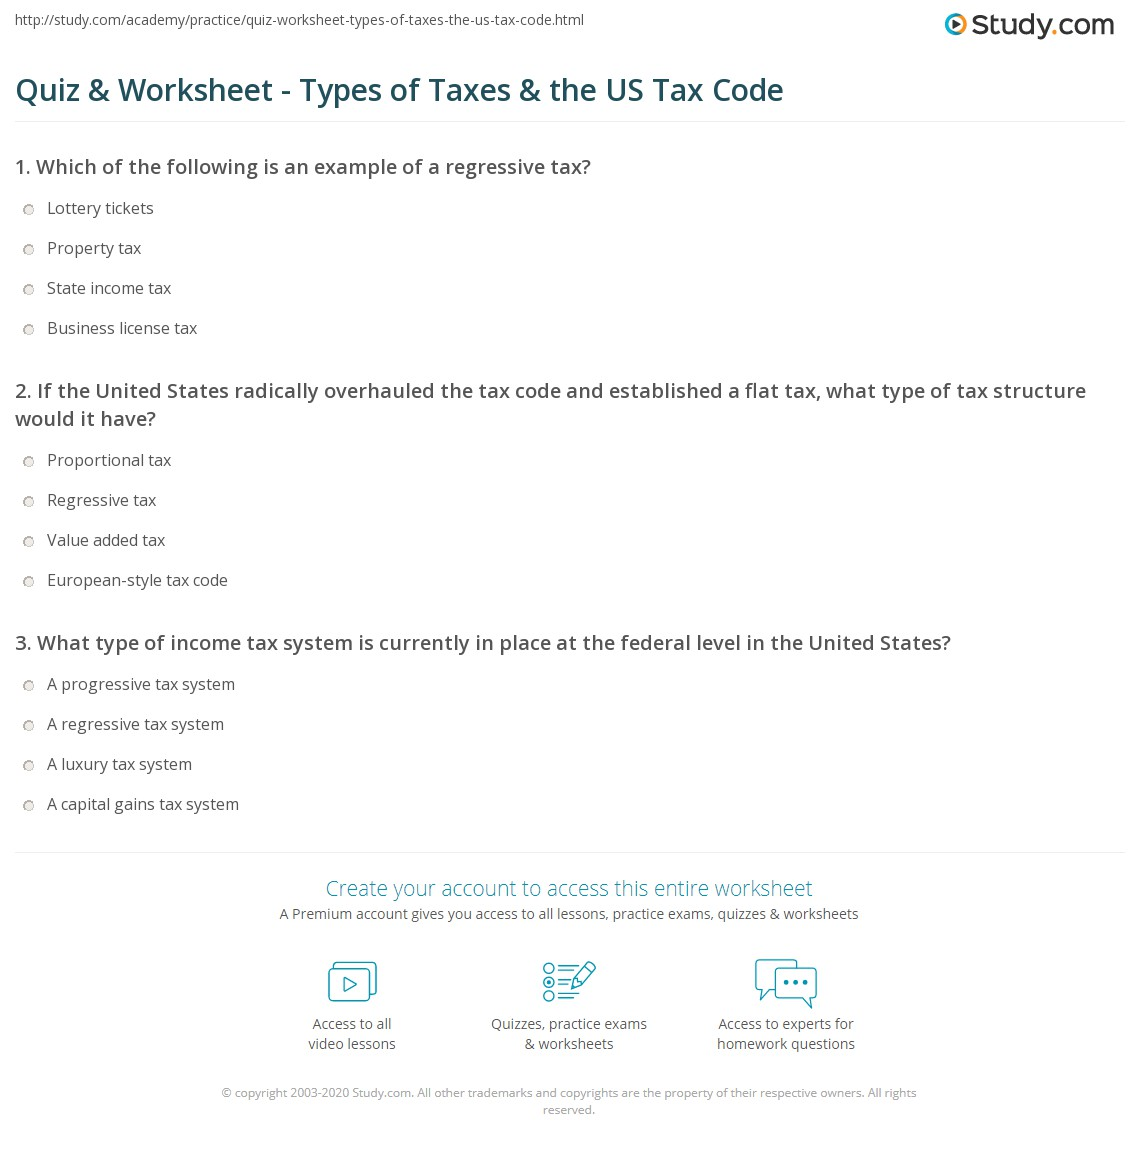 quiz worksheet types of taxes the us tax code. Black Bedroom Furniture Sets. Home Design Ideas